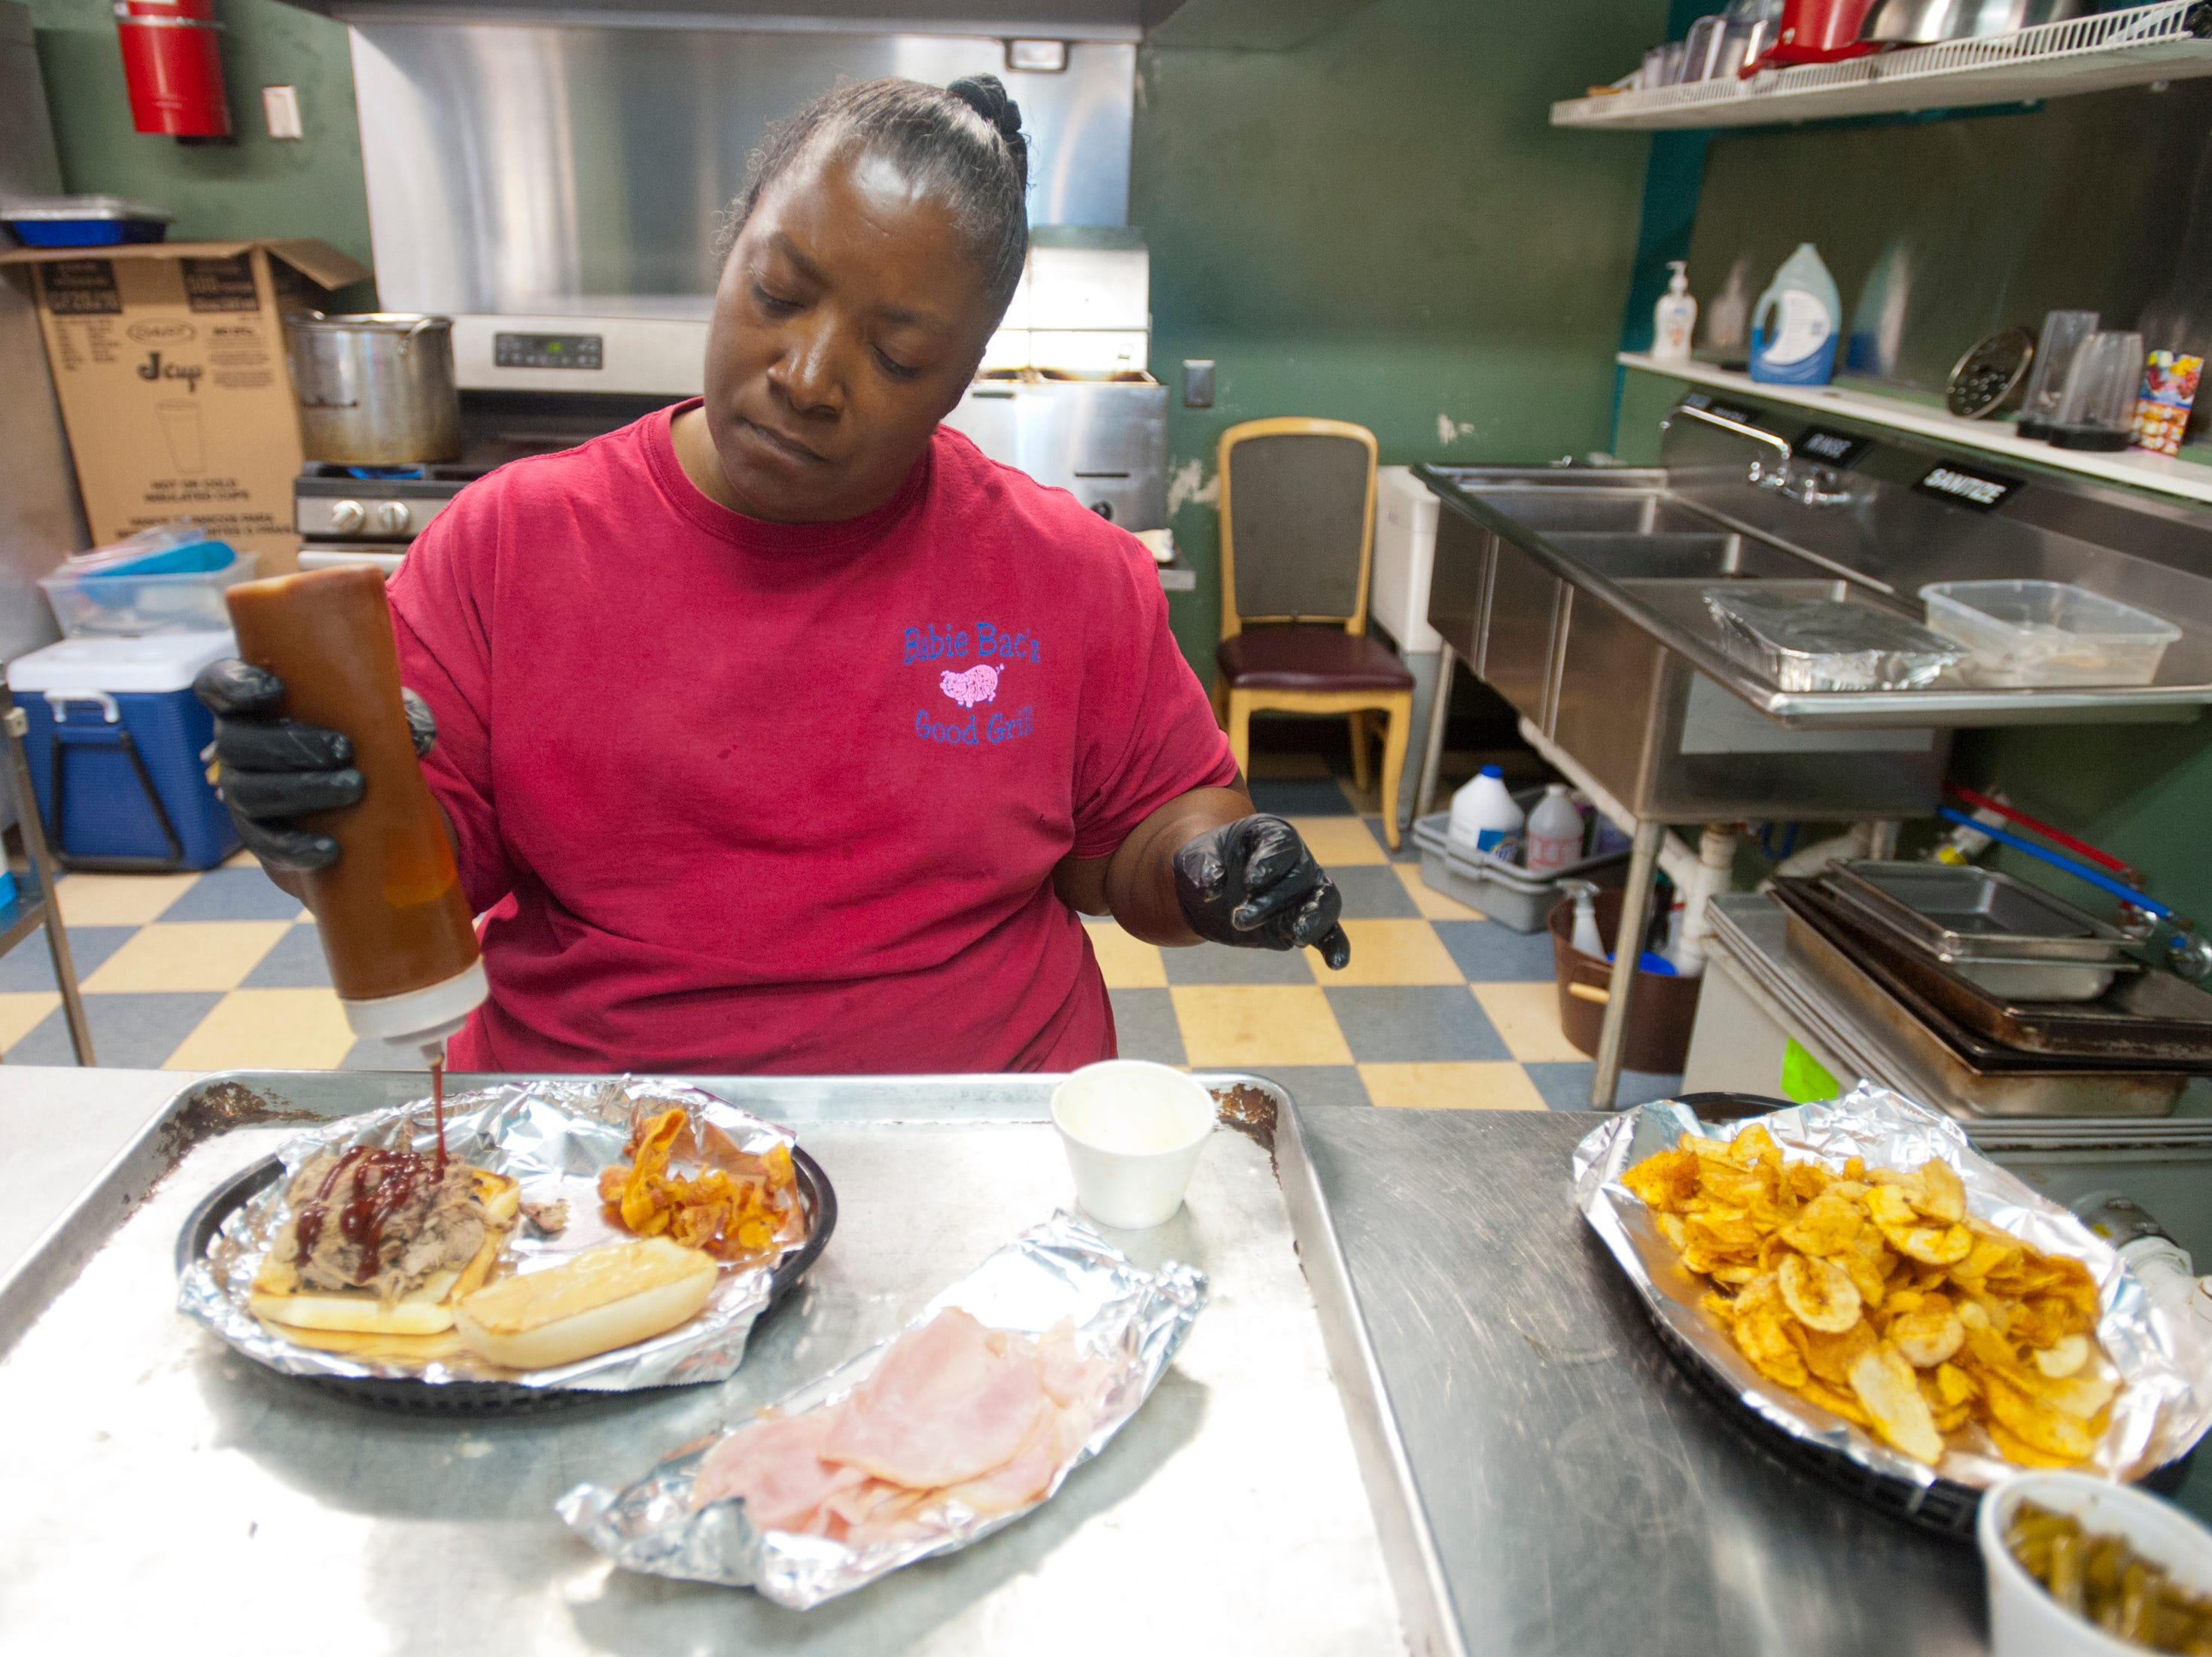 Babie Bac'z Good Grill co-owner Lydia Russell squirts some of the restaurant's original barbecue sauce on the eatery's Bac'z Attack sandwich made with deep fried smoked bacon and pulled pork on a chiabbata bun.October 24, 2018